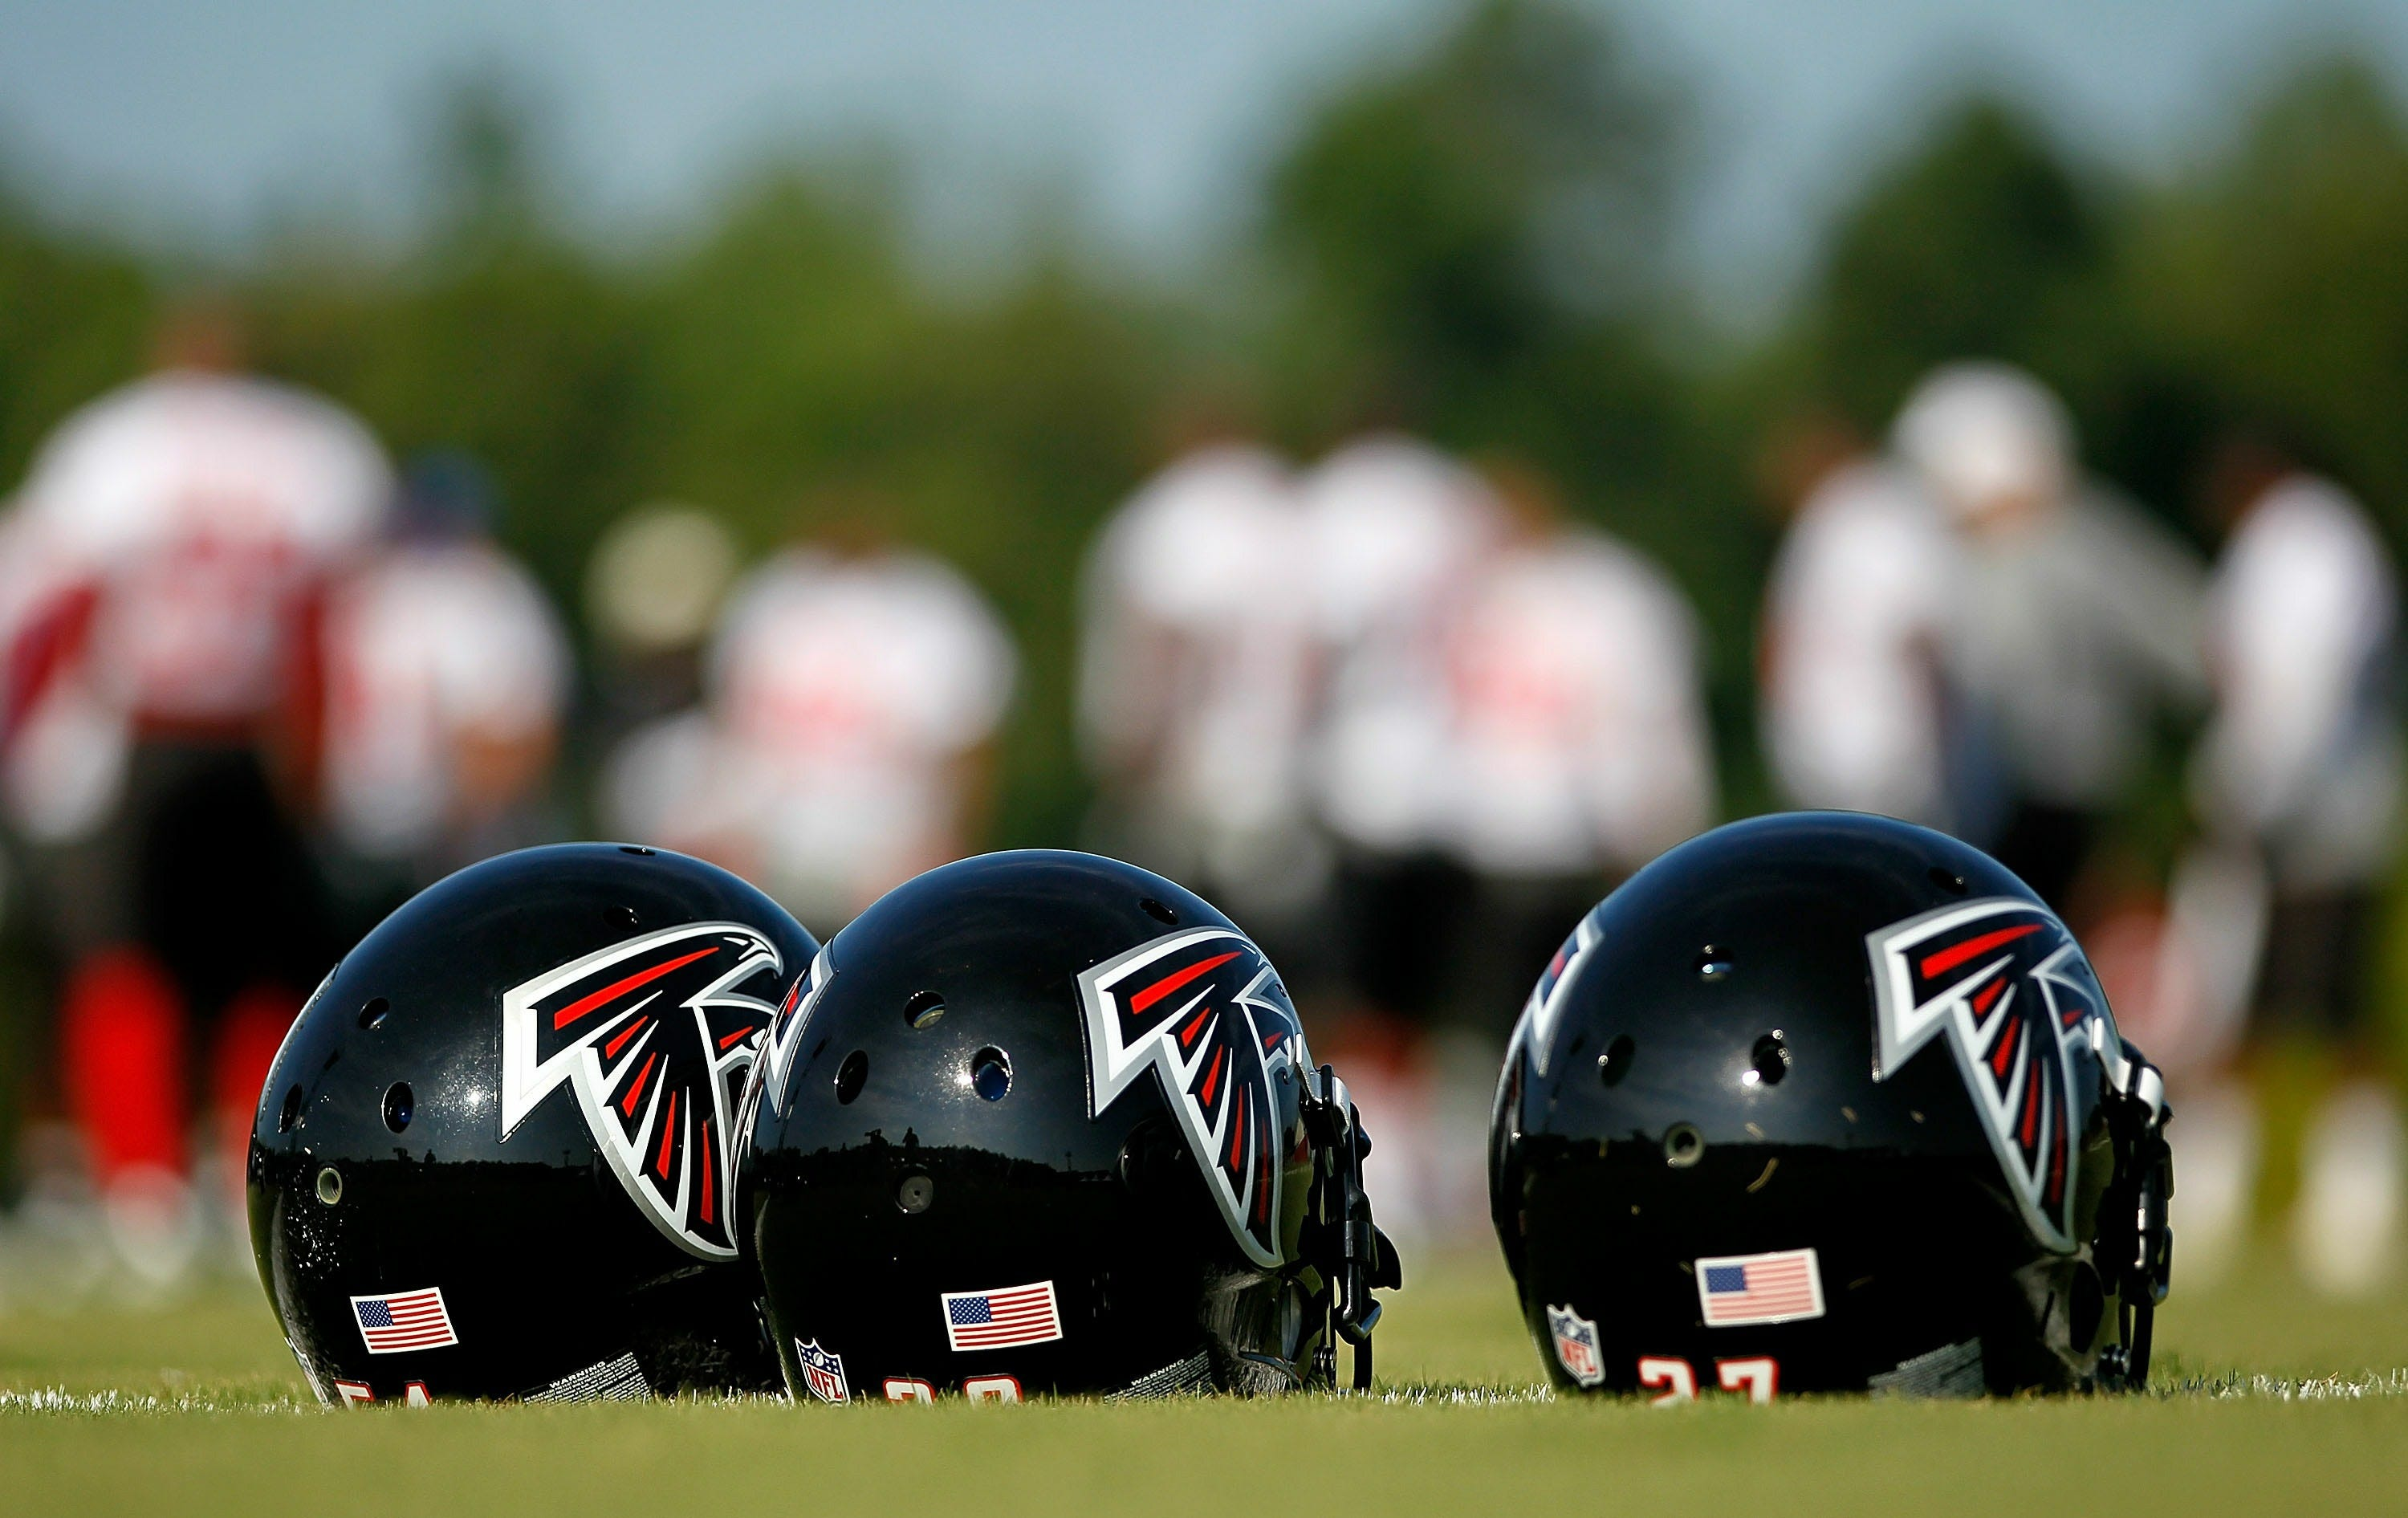 Falcons shutting down facility due to positive COVID-19 tests, per report